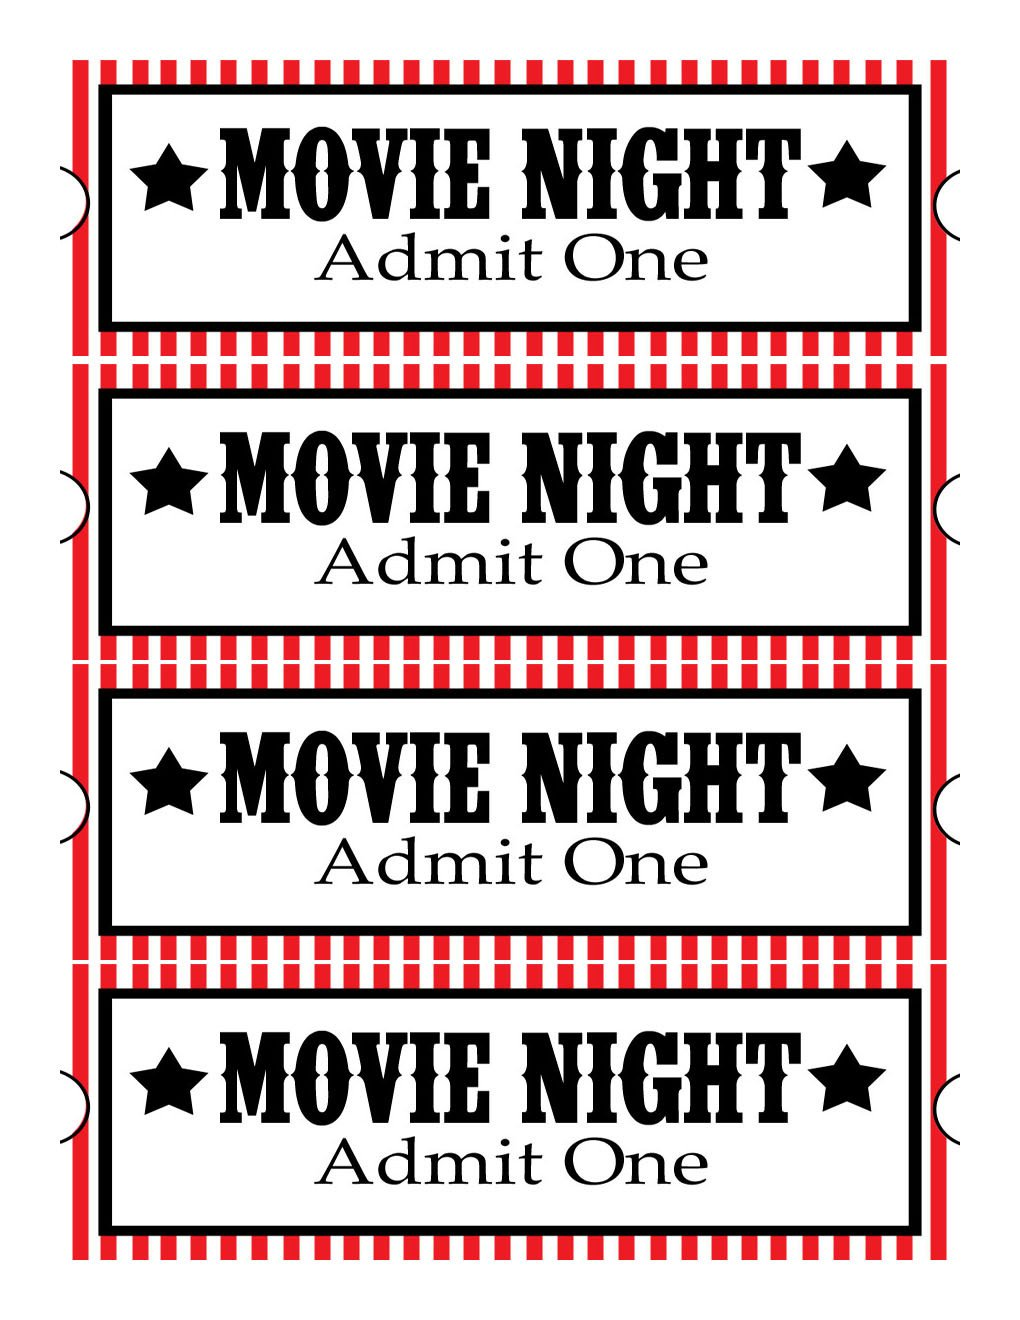 Free Movie Ticket Template Sweet Daisy Designs Free Printables Home Movie theatre Night